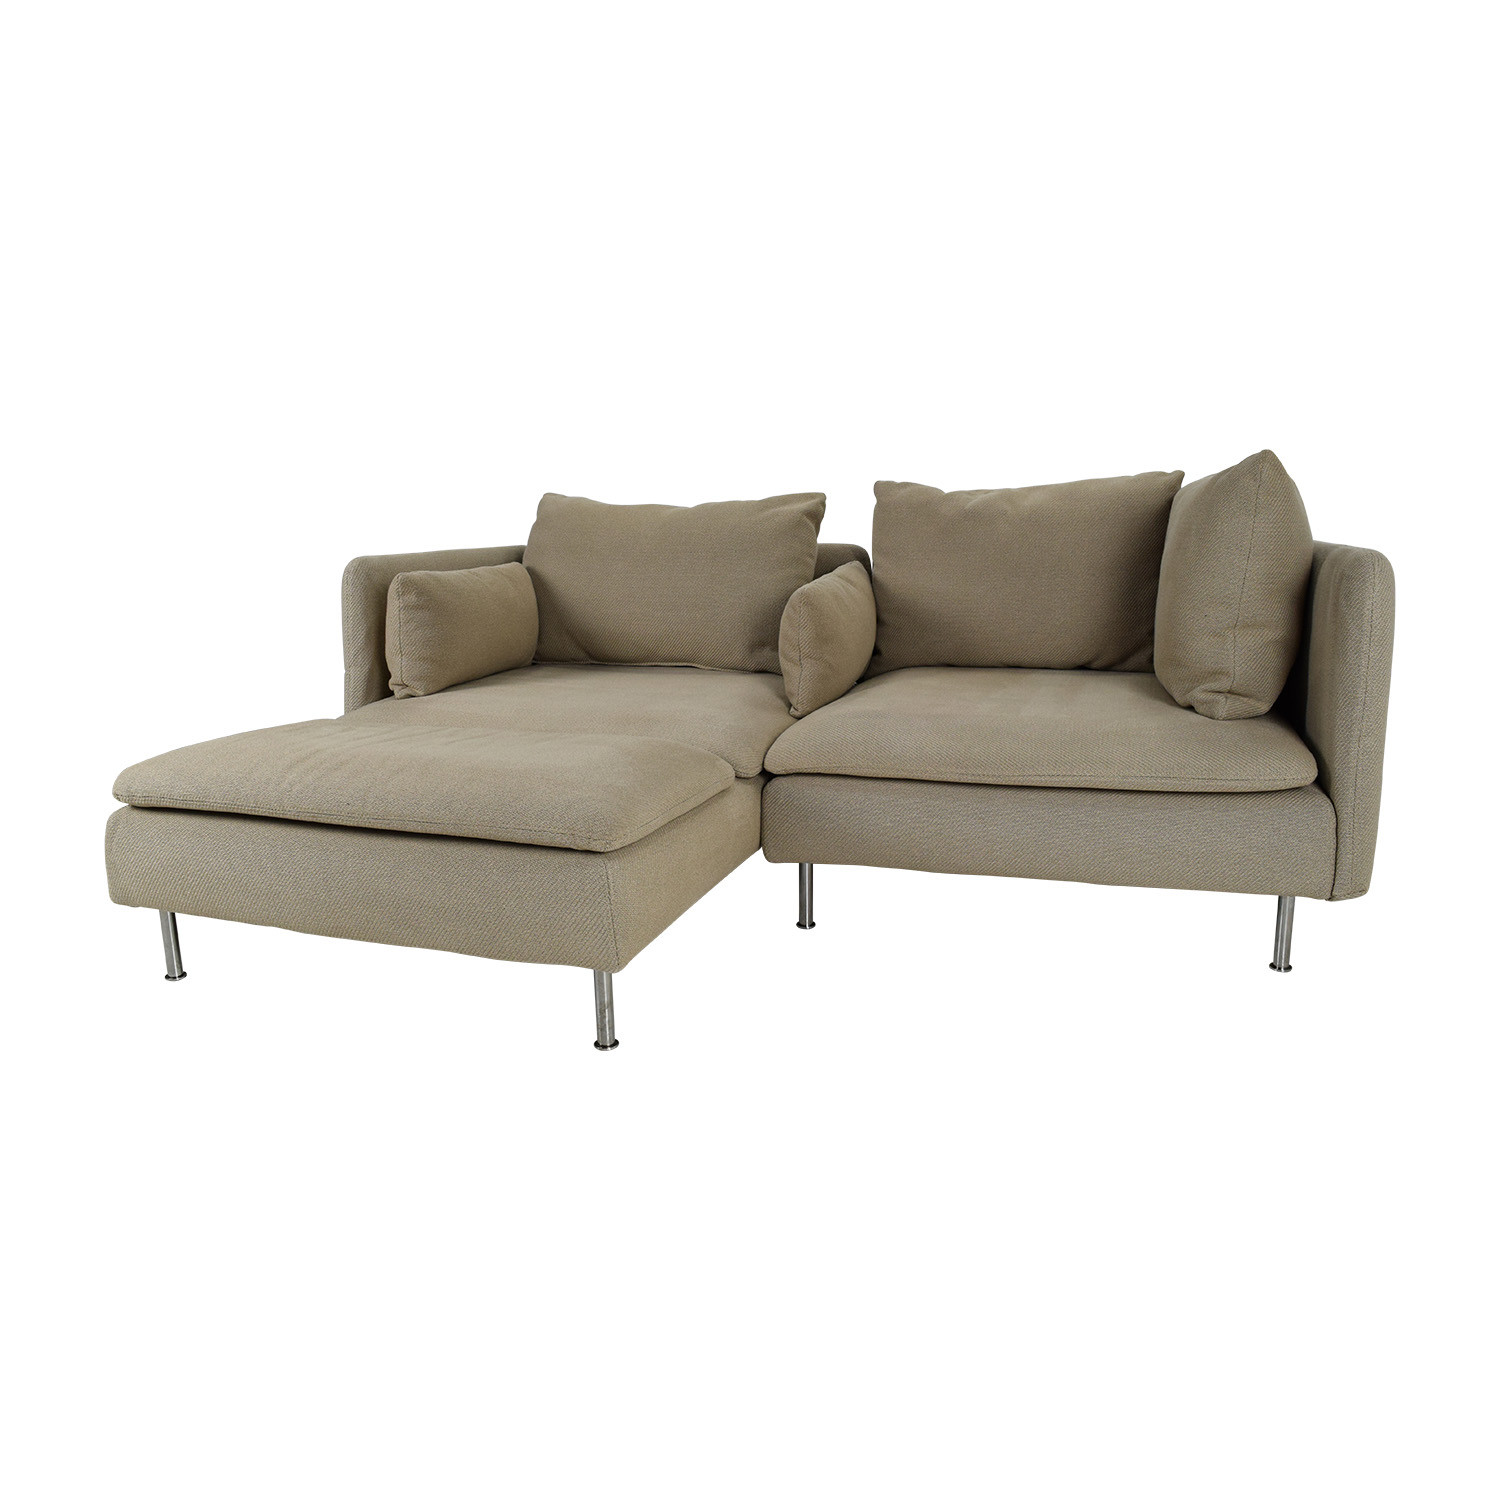 Best ideas about Ikea Sectional Sofa . Save or Pin OFF IKEA Soderhamn Sectional Sofa Sofas Now.